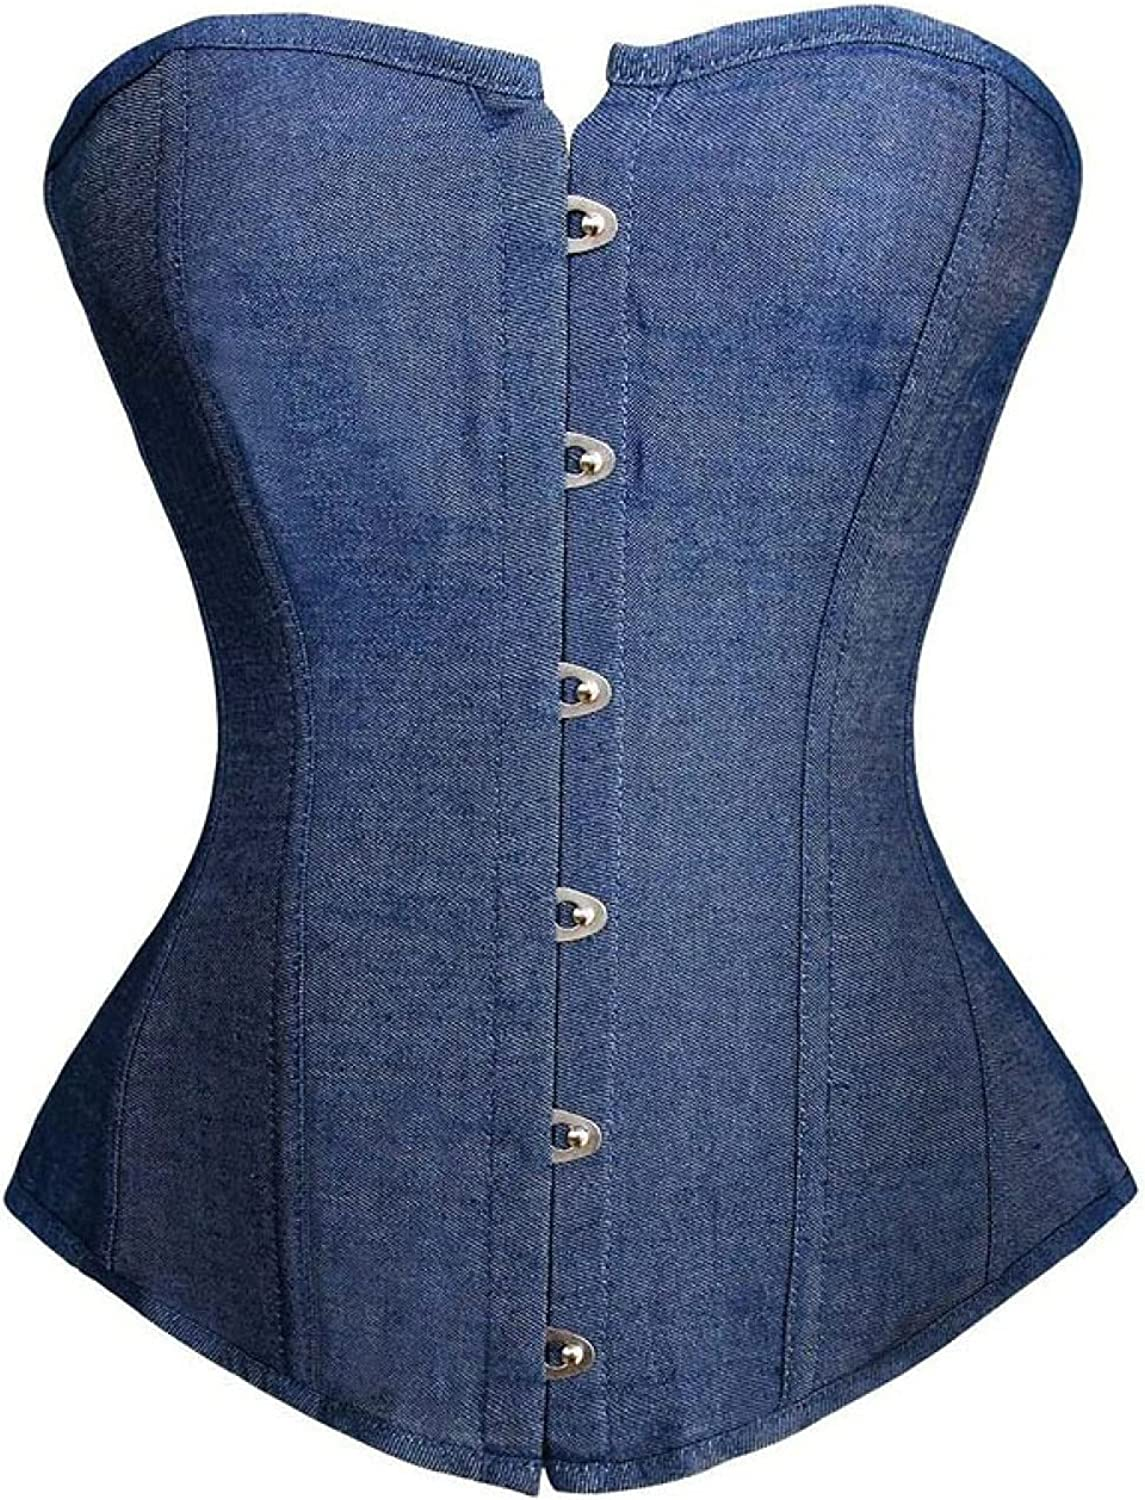 Woman Special price Overbust Corsets Costumes Arlington Mall Simple Tops Vintage Slim Corset